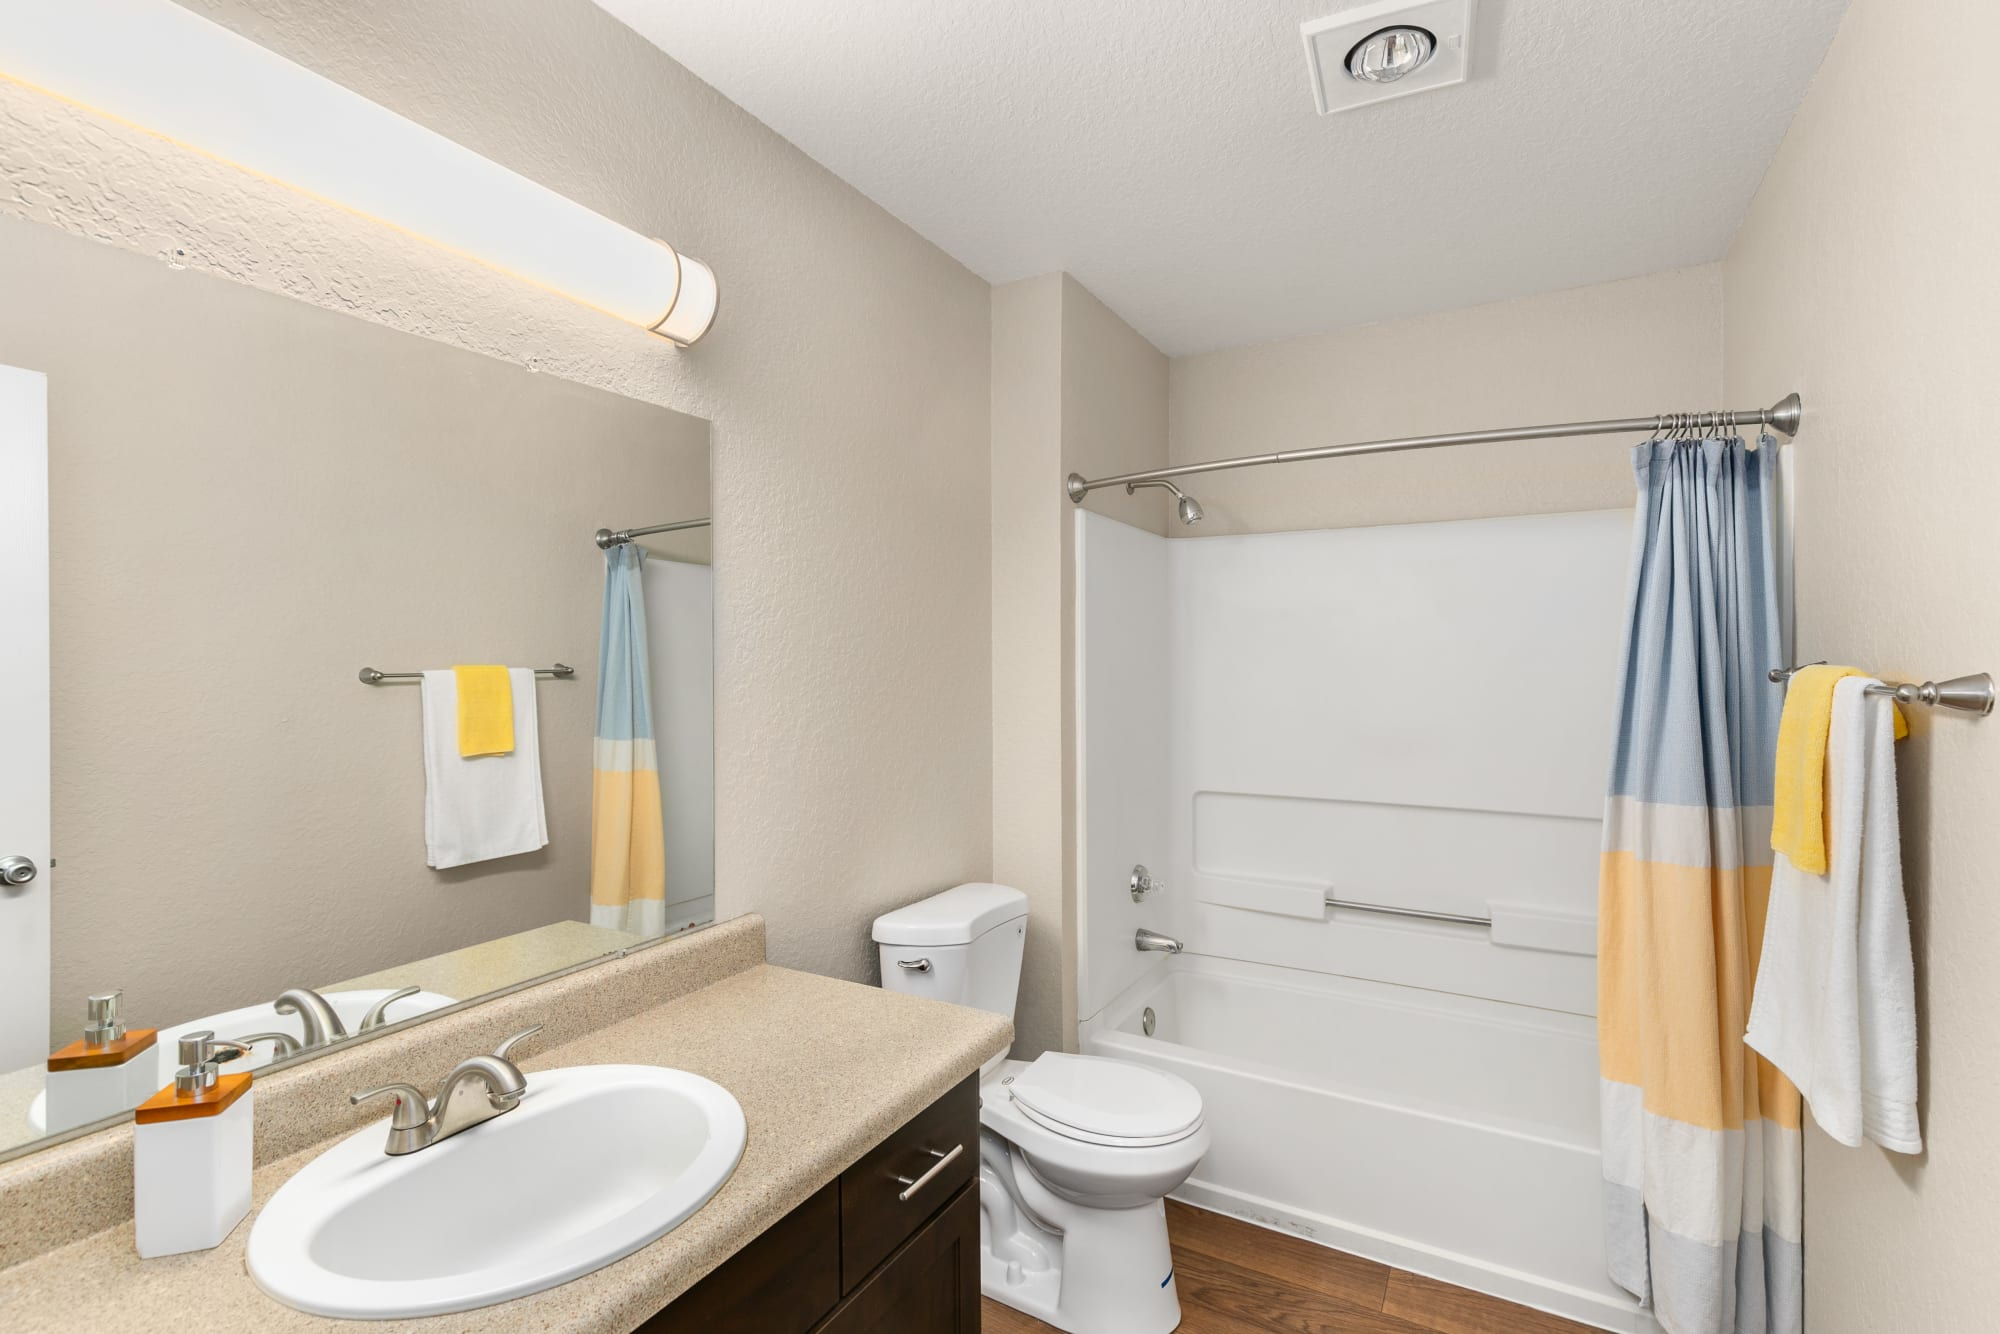 Renovated bathroom with espresso cabinetry at Carriage Park Apartments in Vancouver, Washington